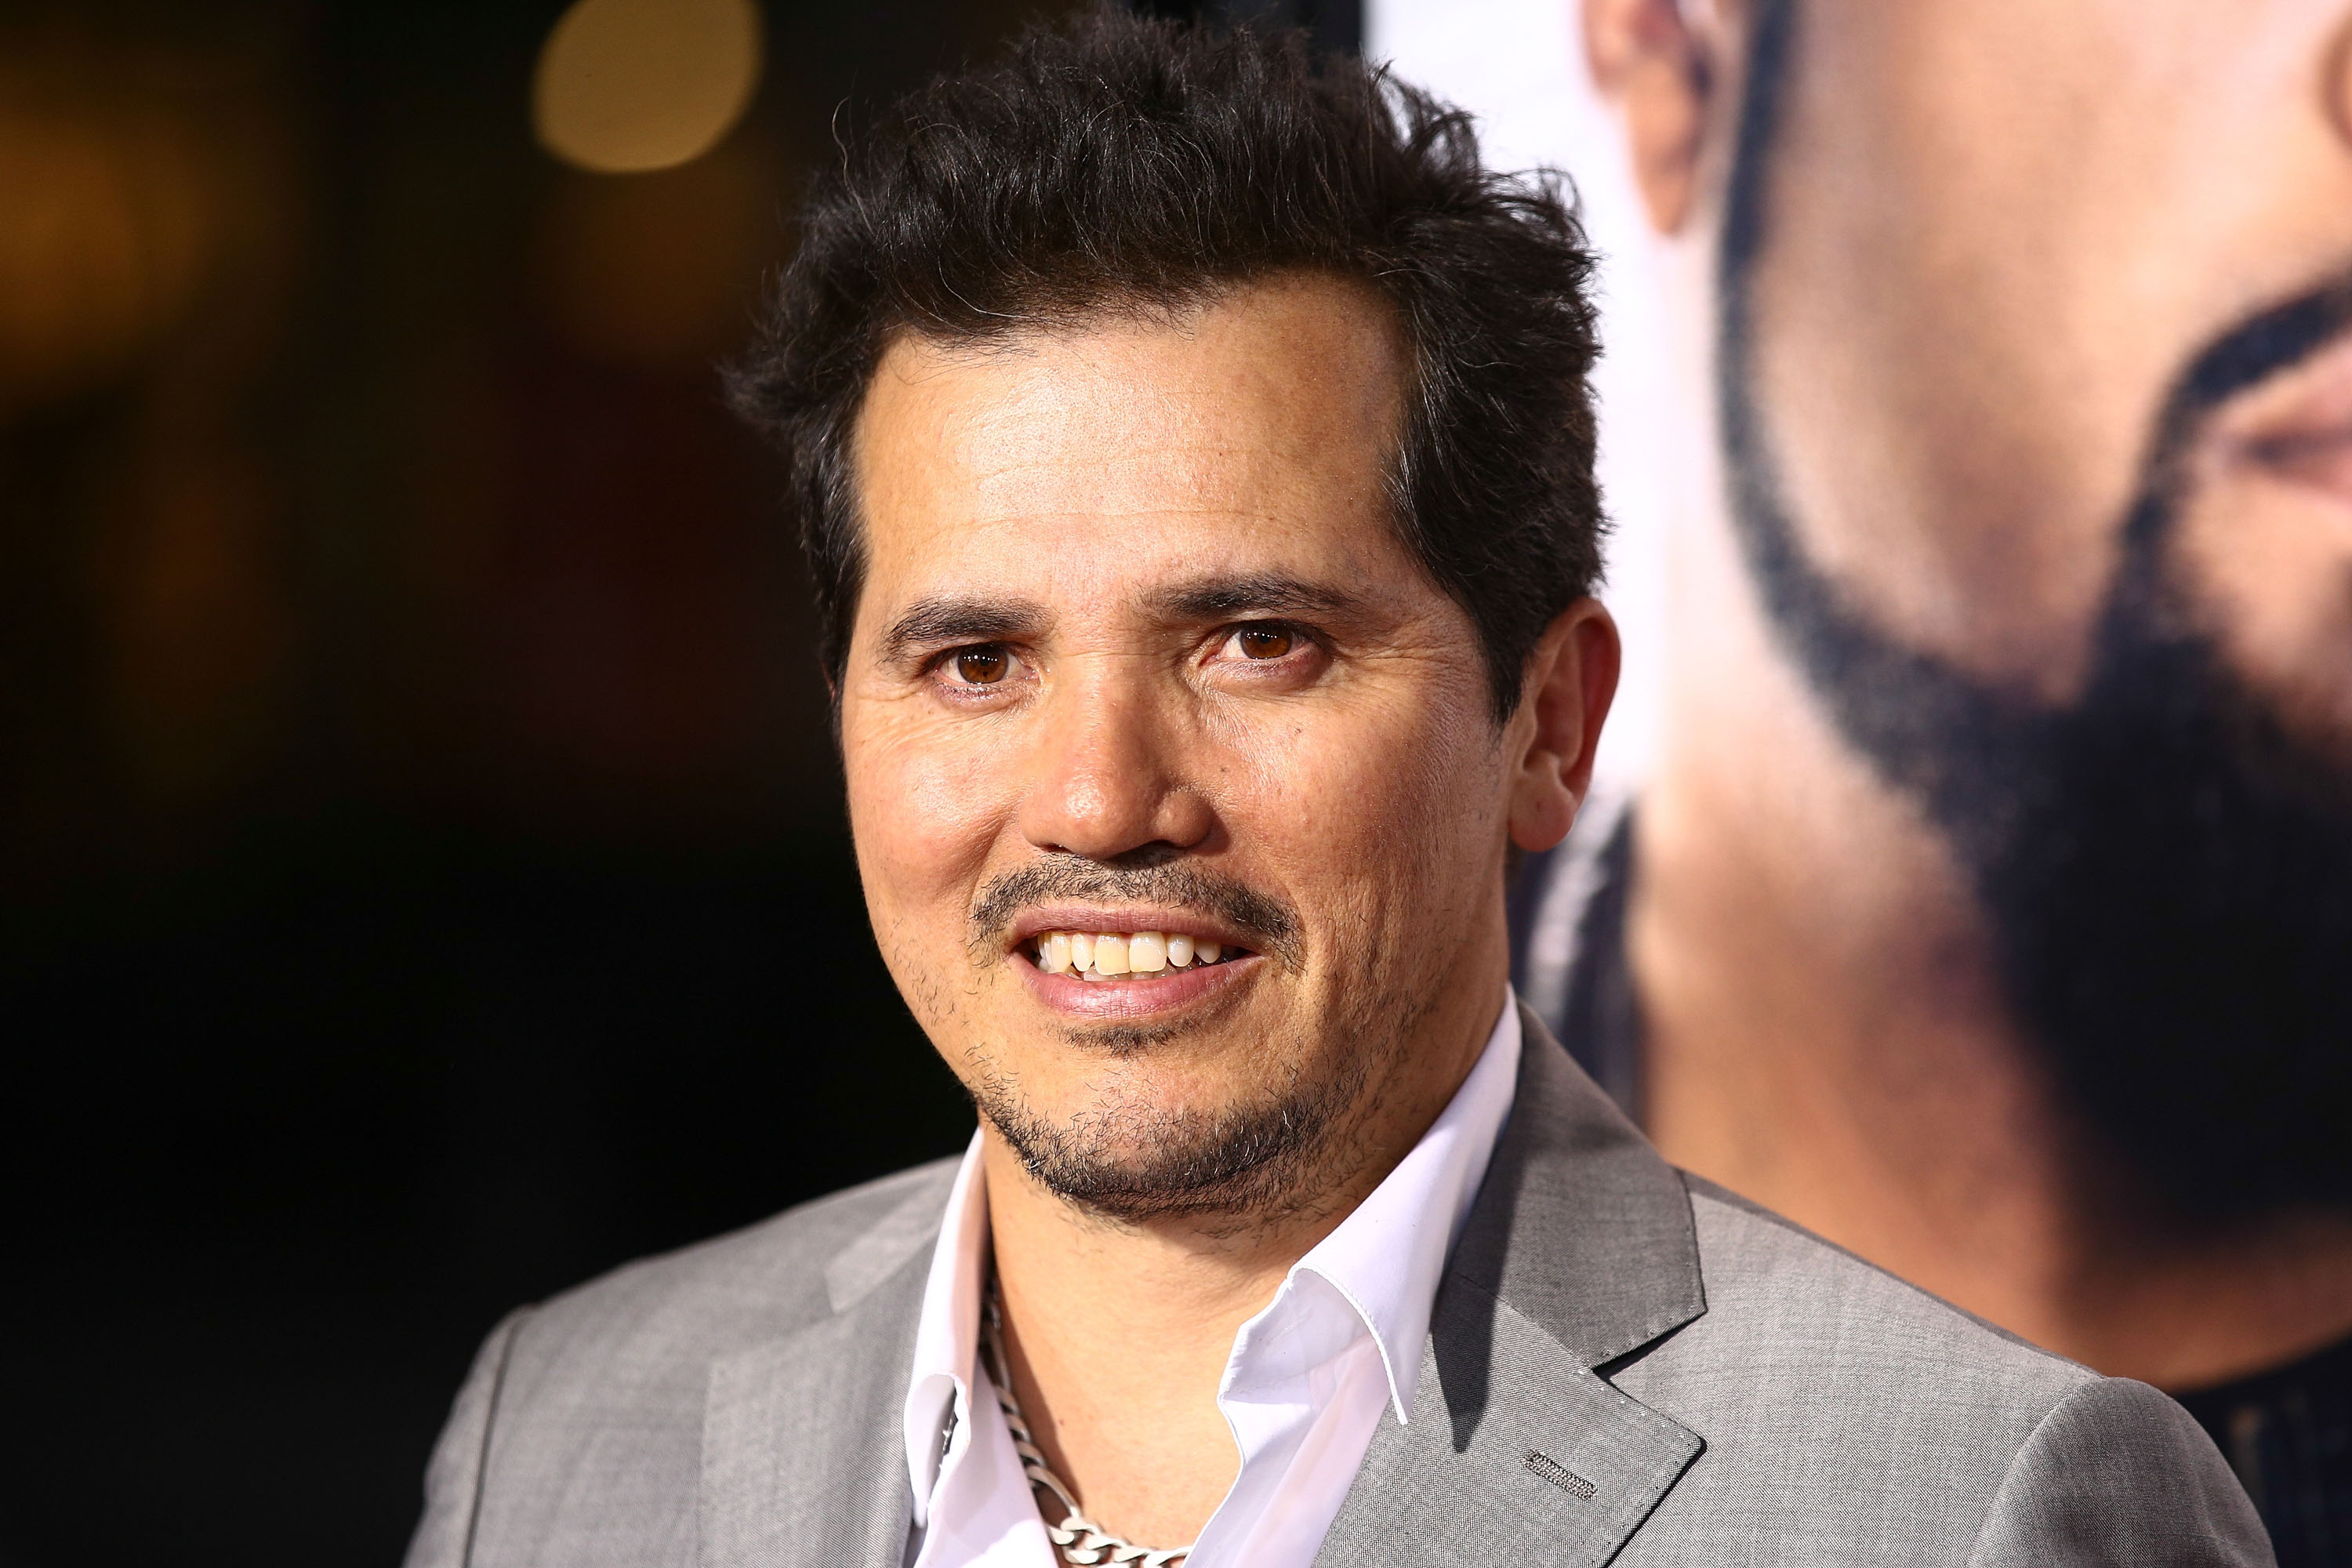 John Leguizamo Cast in Ava DuVernay's Netflix Series on Wrongly Convicted 'Central Park Five'